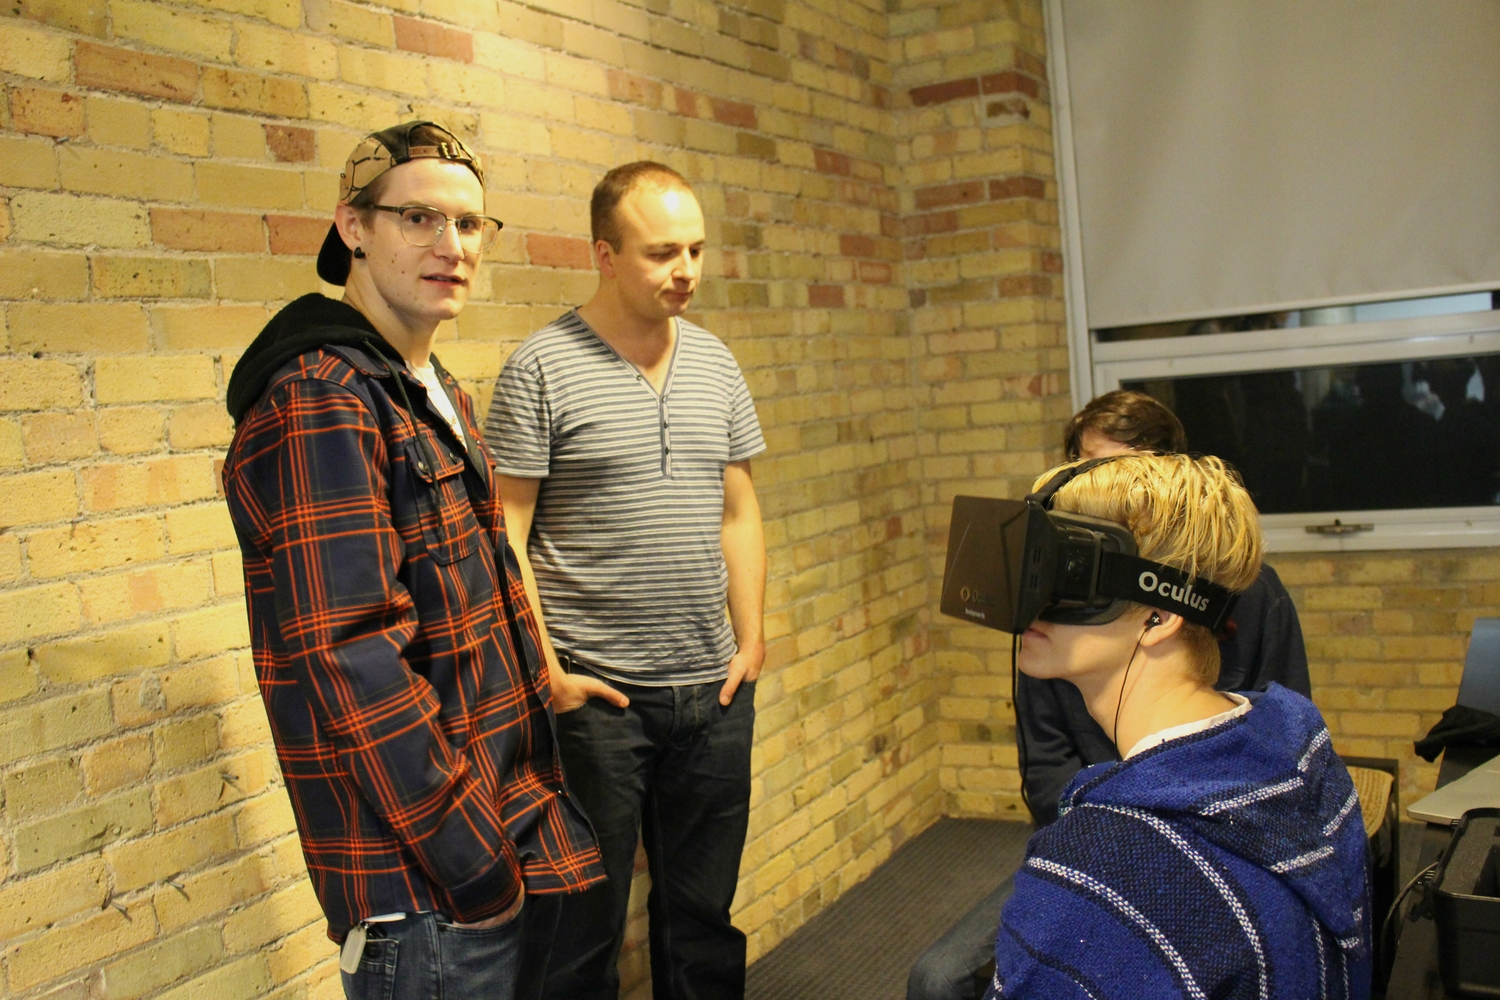 Meetup guests use a demo for the Oculus Rift DK1